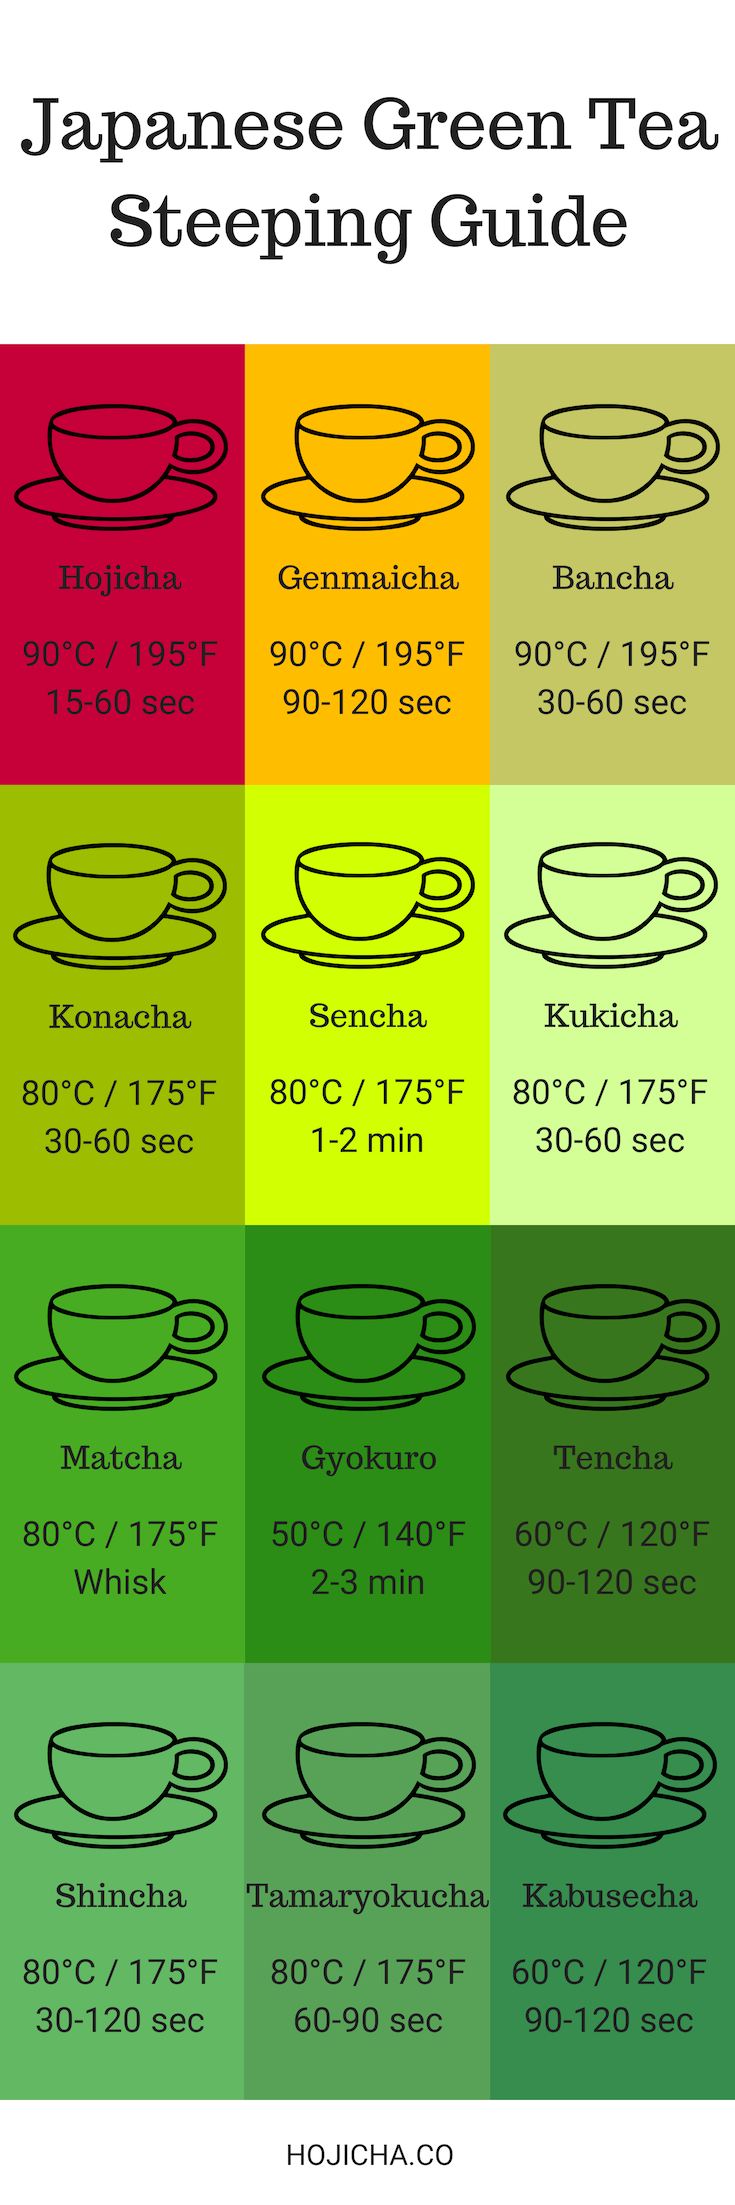 How to prepare Japanese Green Tea